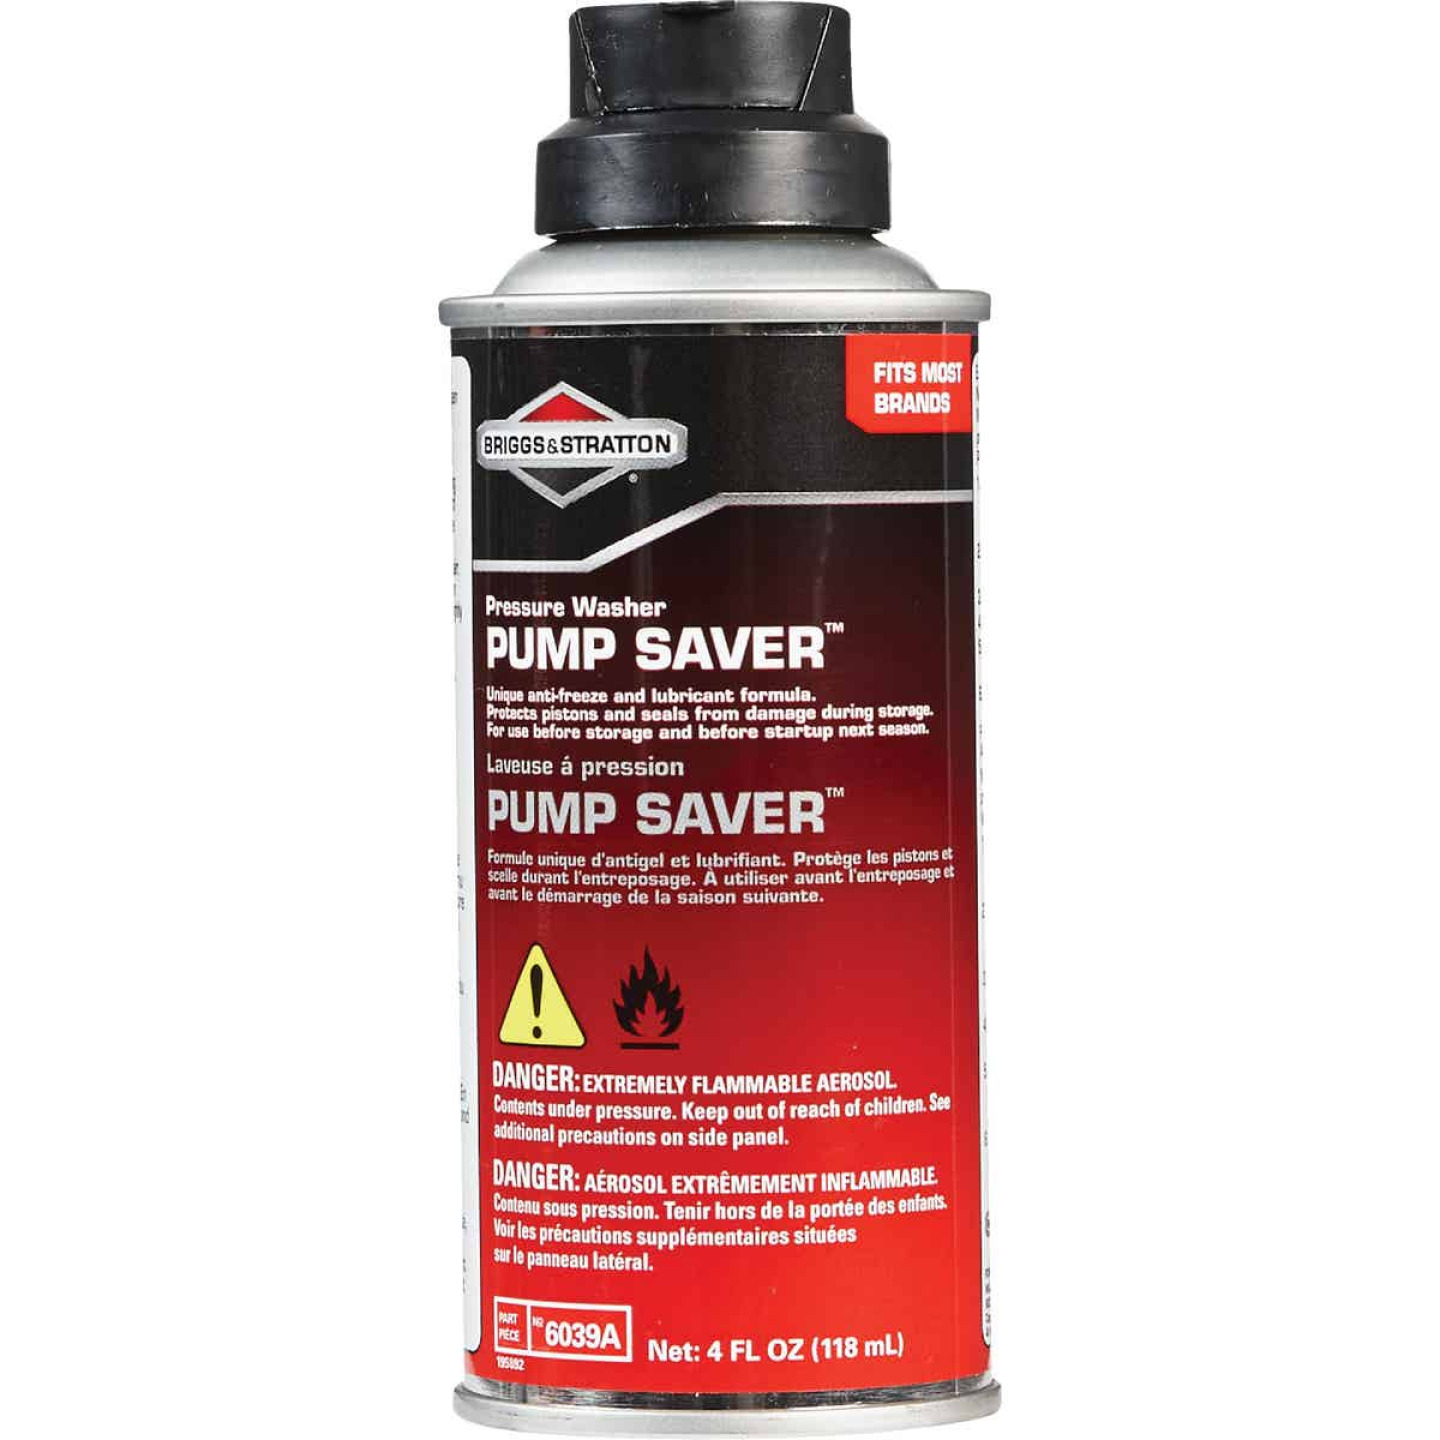 Briggs & Stratton Pump Saver 4 Oz. For Pressure Washer Image 2